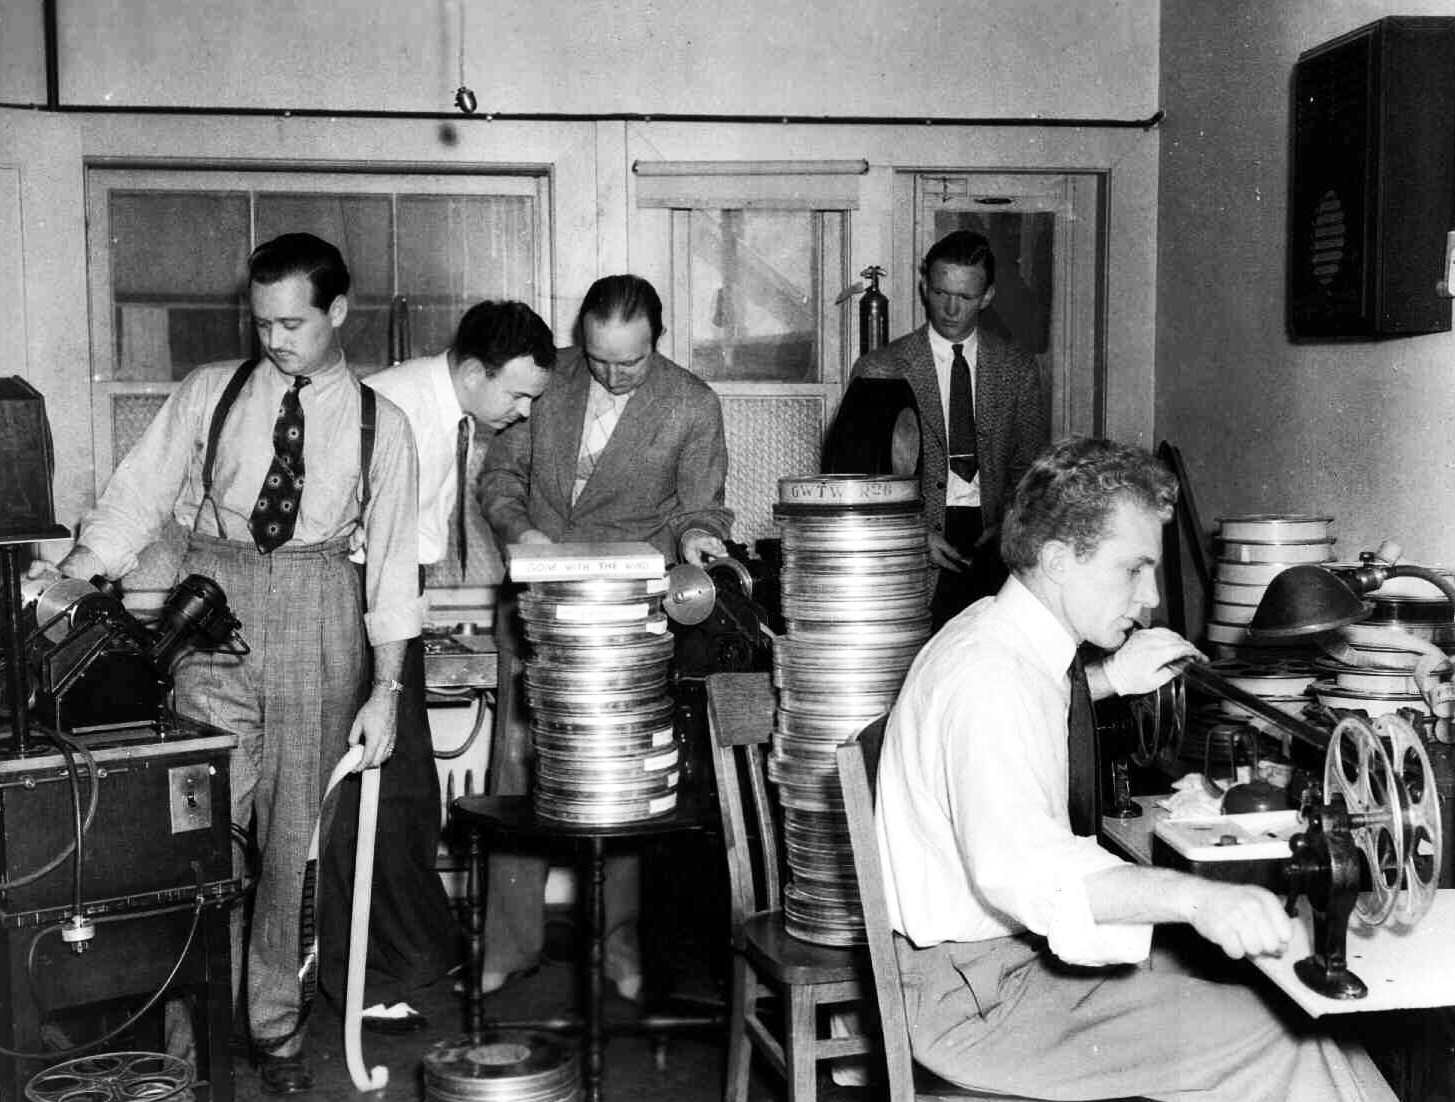 Film Editor Hal C. Kern, third from left, and others, edit Gone with the Wind in 1939.